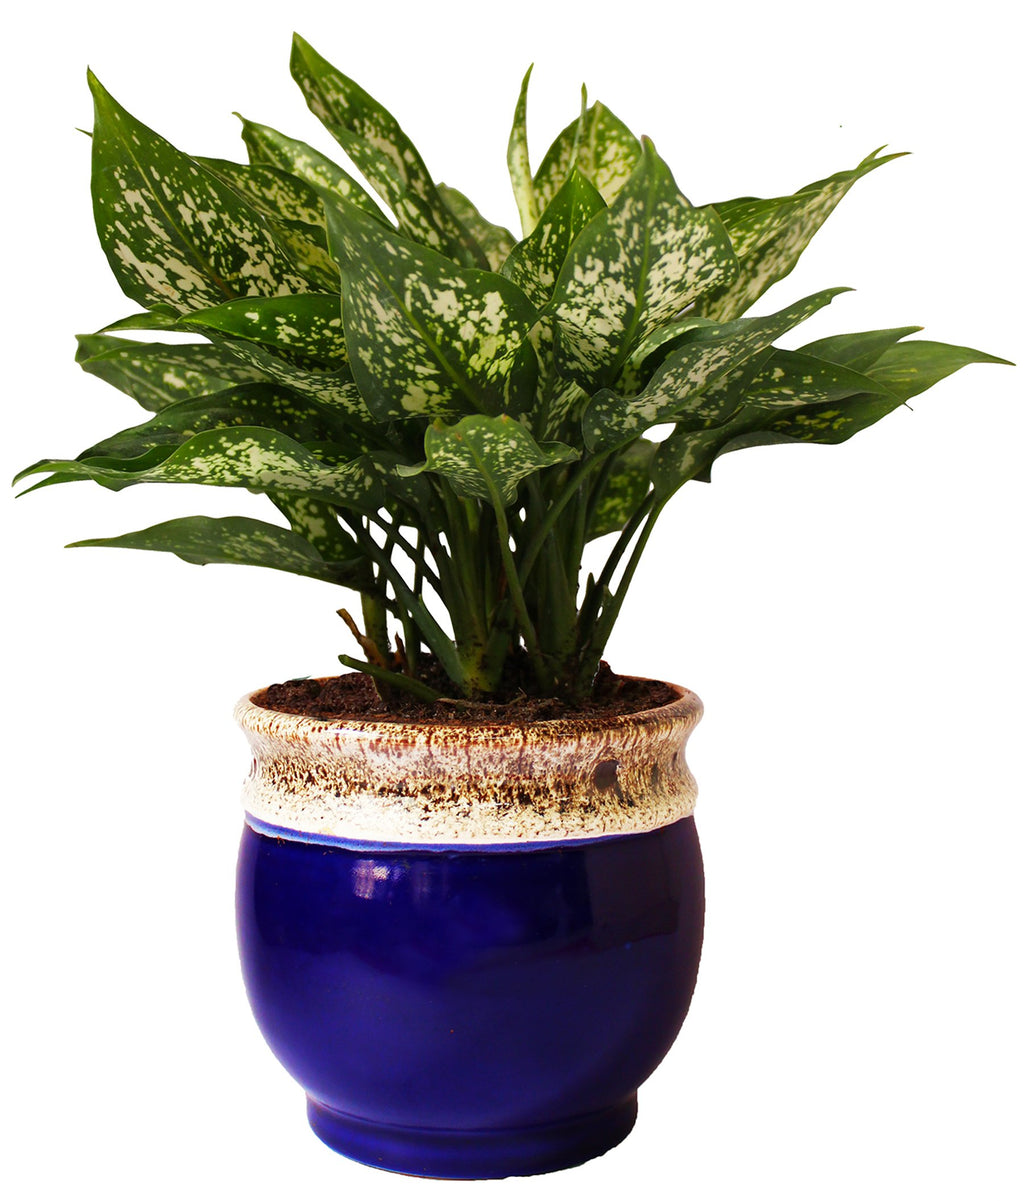 Rolling Nature  Good Luck Air Purifying Green Aglaonema Snow White Chinese Evergreen Plant in Blue Drip Glazed Pitcher Ceramic Pot